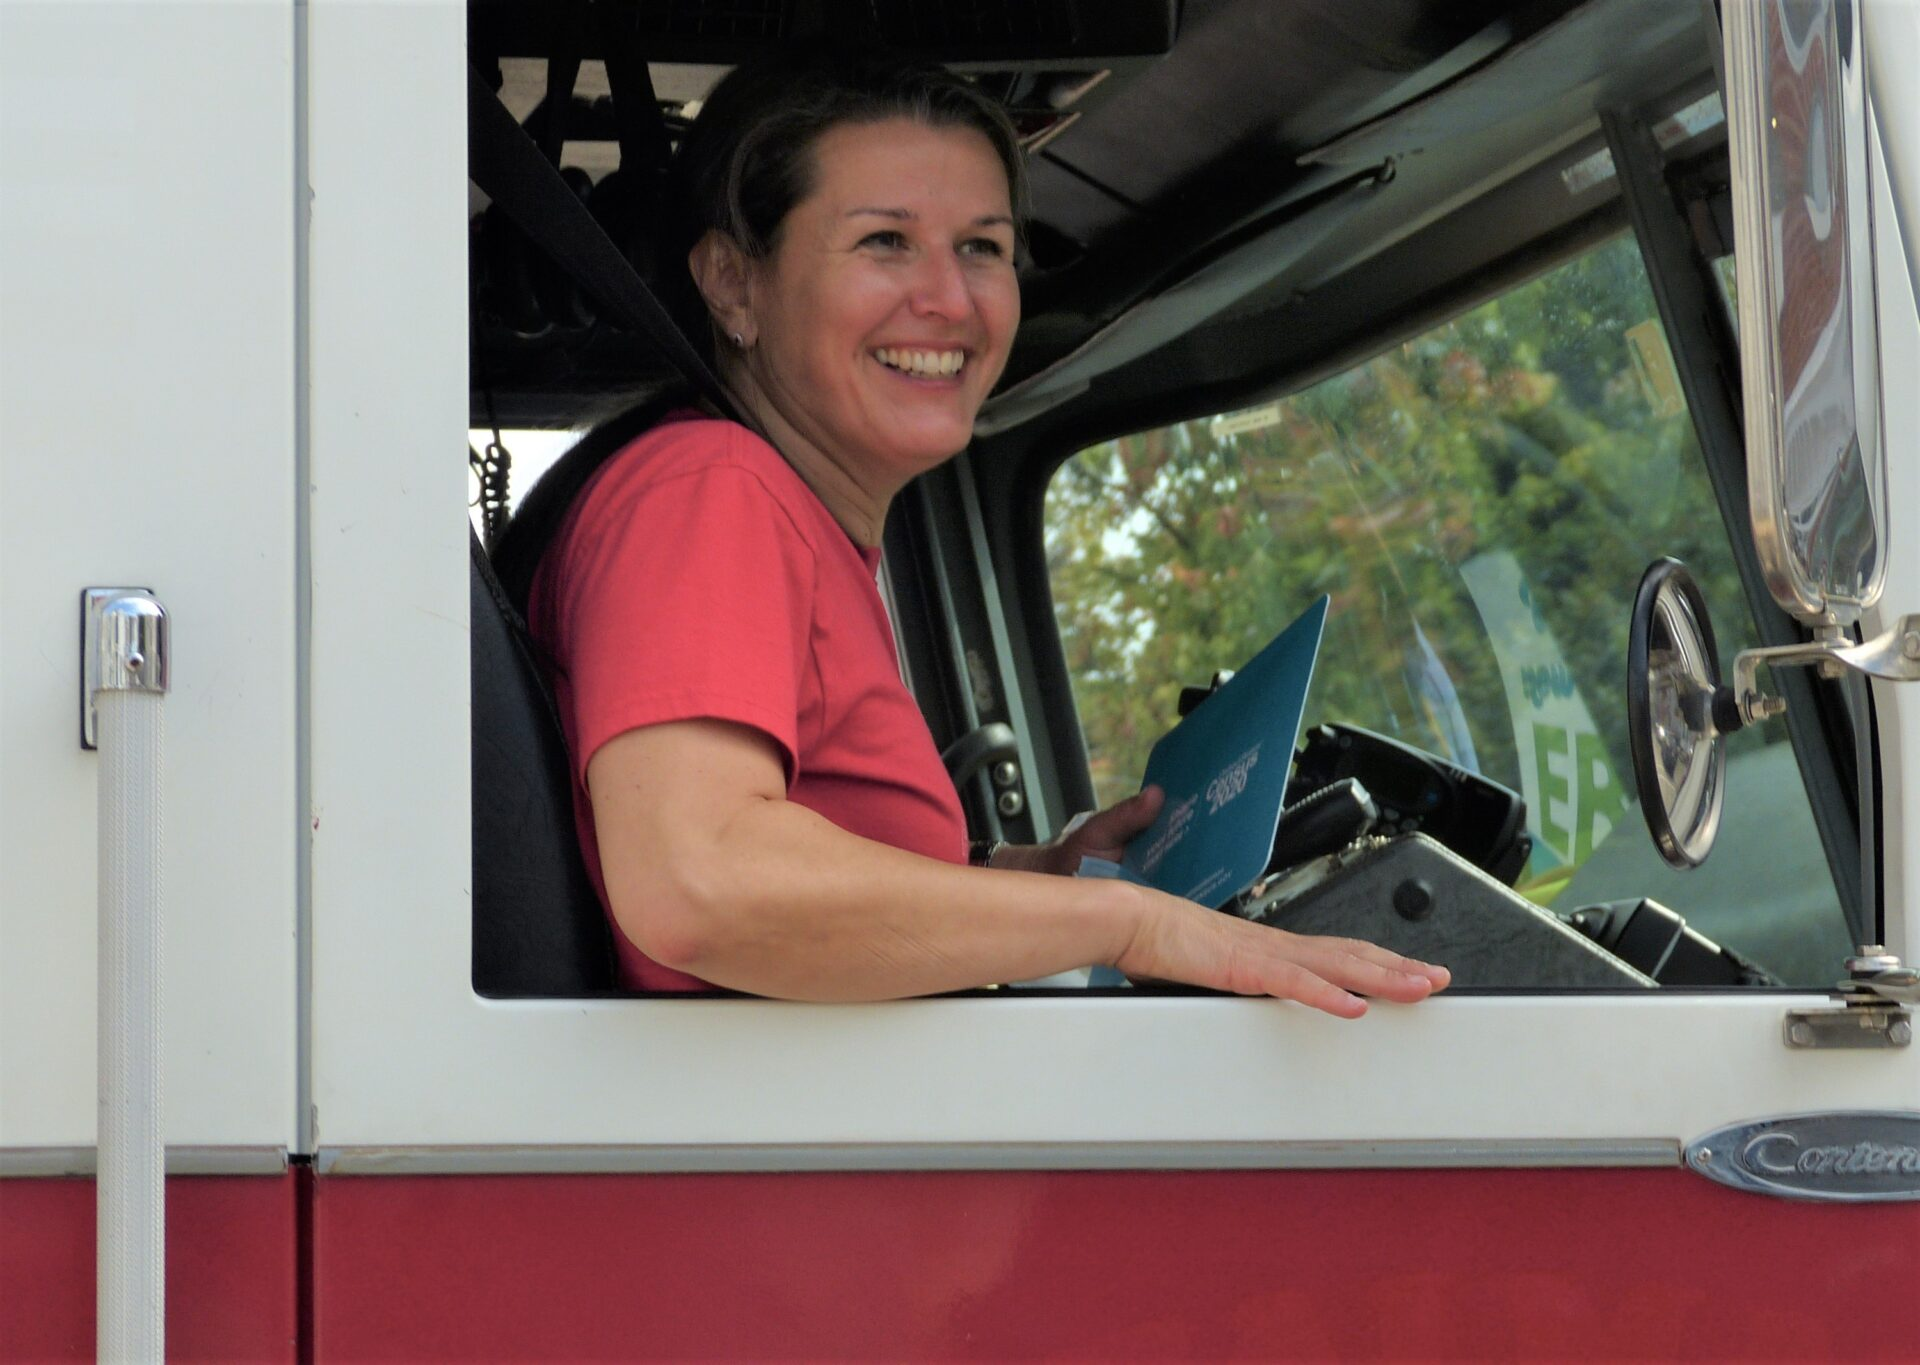 Lancaster Mayor Danene Sorace smiles from the passenger seat of a fire truck as she rides through city neighborhoods for Census Emergency Day on Friday, Sept. 25, 2020. (Photo: Tim Stuhldreher)